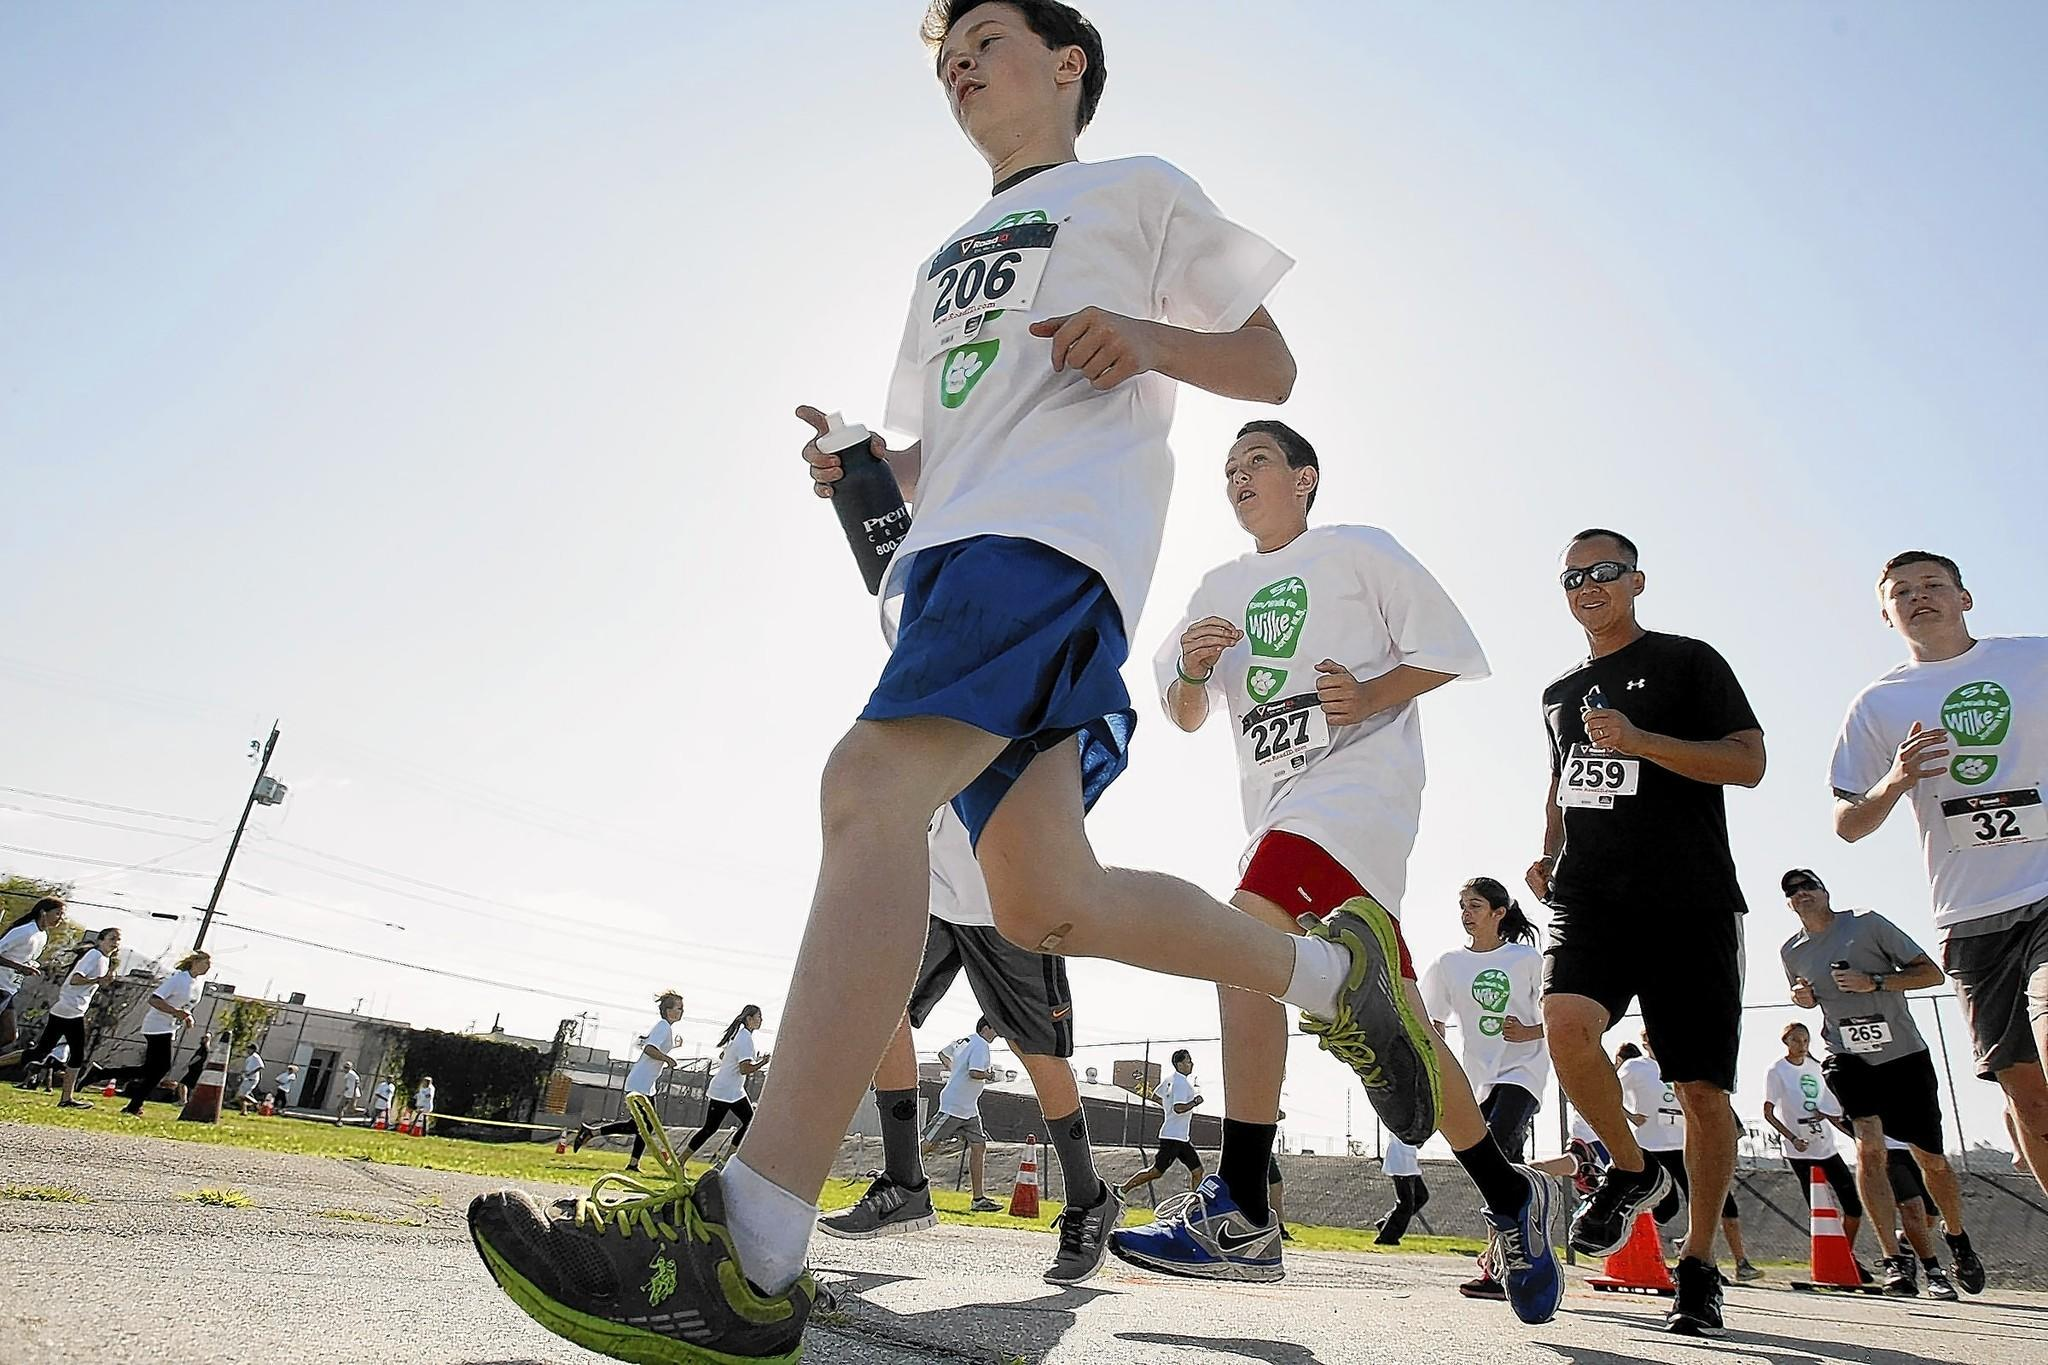 Jordan Middle School held a 5K walk/run in honor of student Christopher Wilke, a 12-year-old Burbank boy who died last month from a rare bile duct cancer, at the Burbank school on Saturday, April 5, 2014. Proceeds benefit the Talbert Foundation.